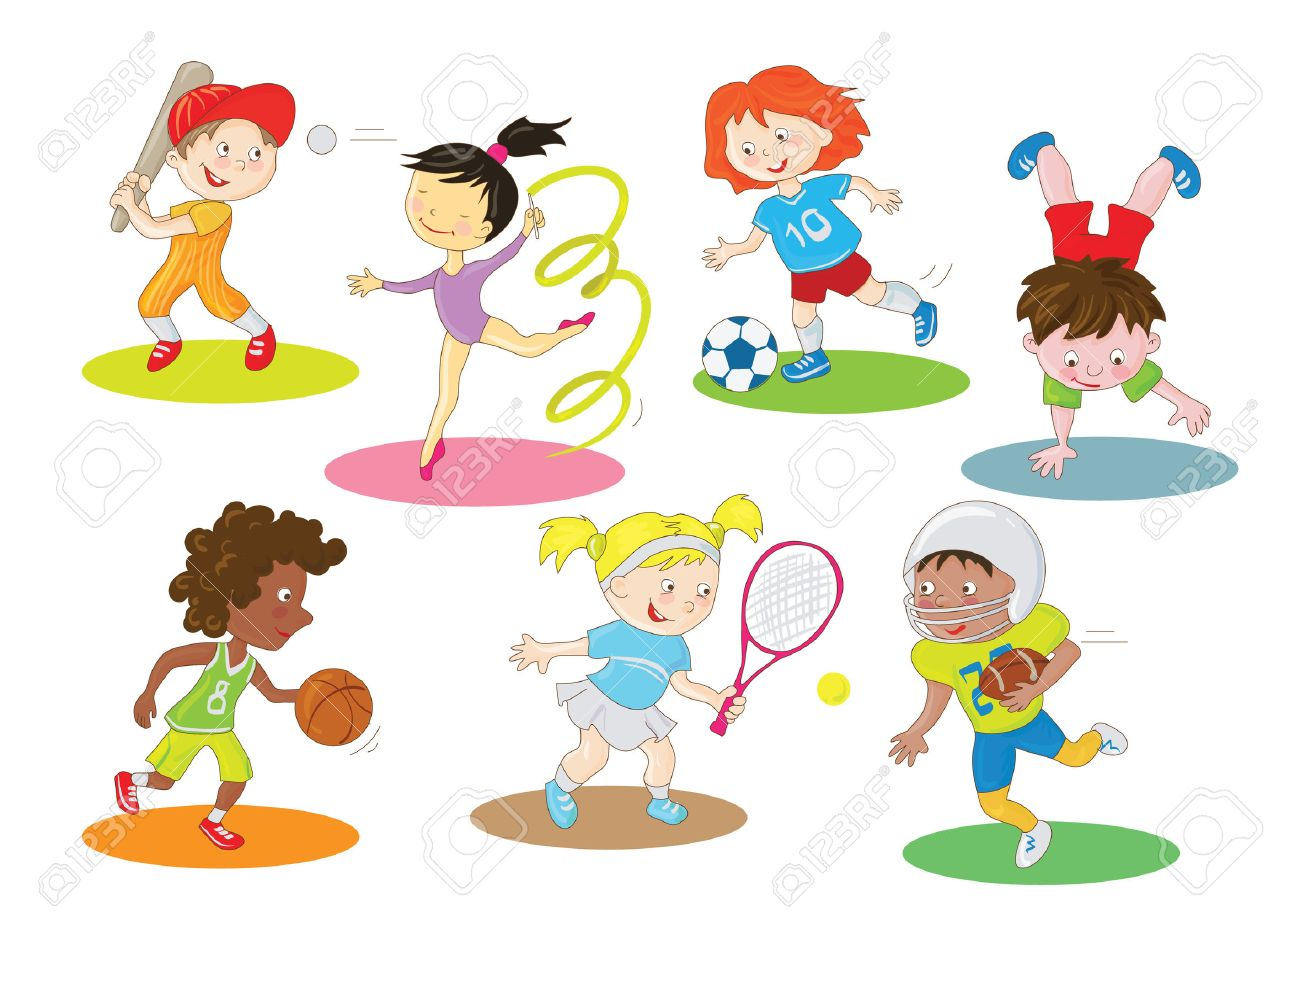 Image result for outdoor sports cartoon